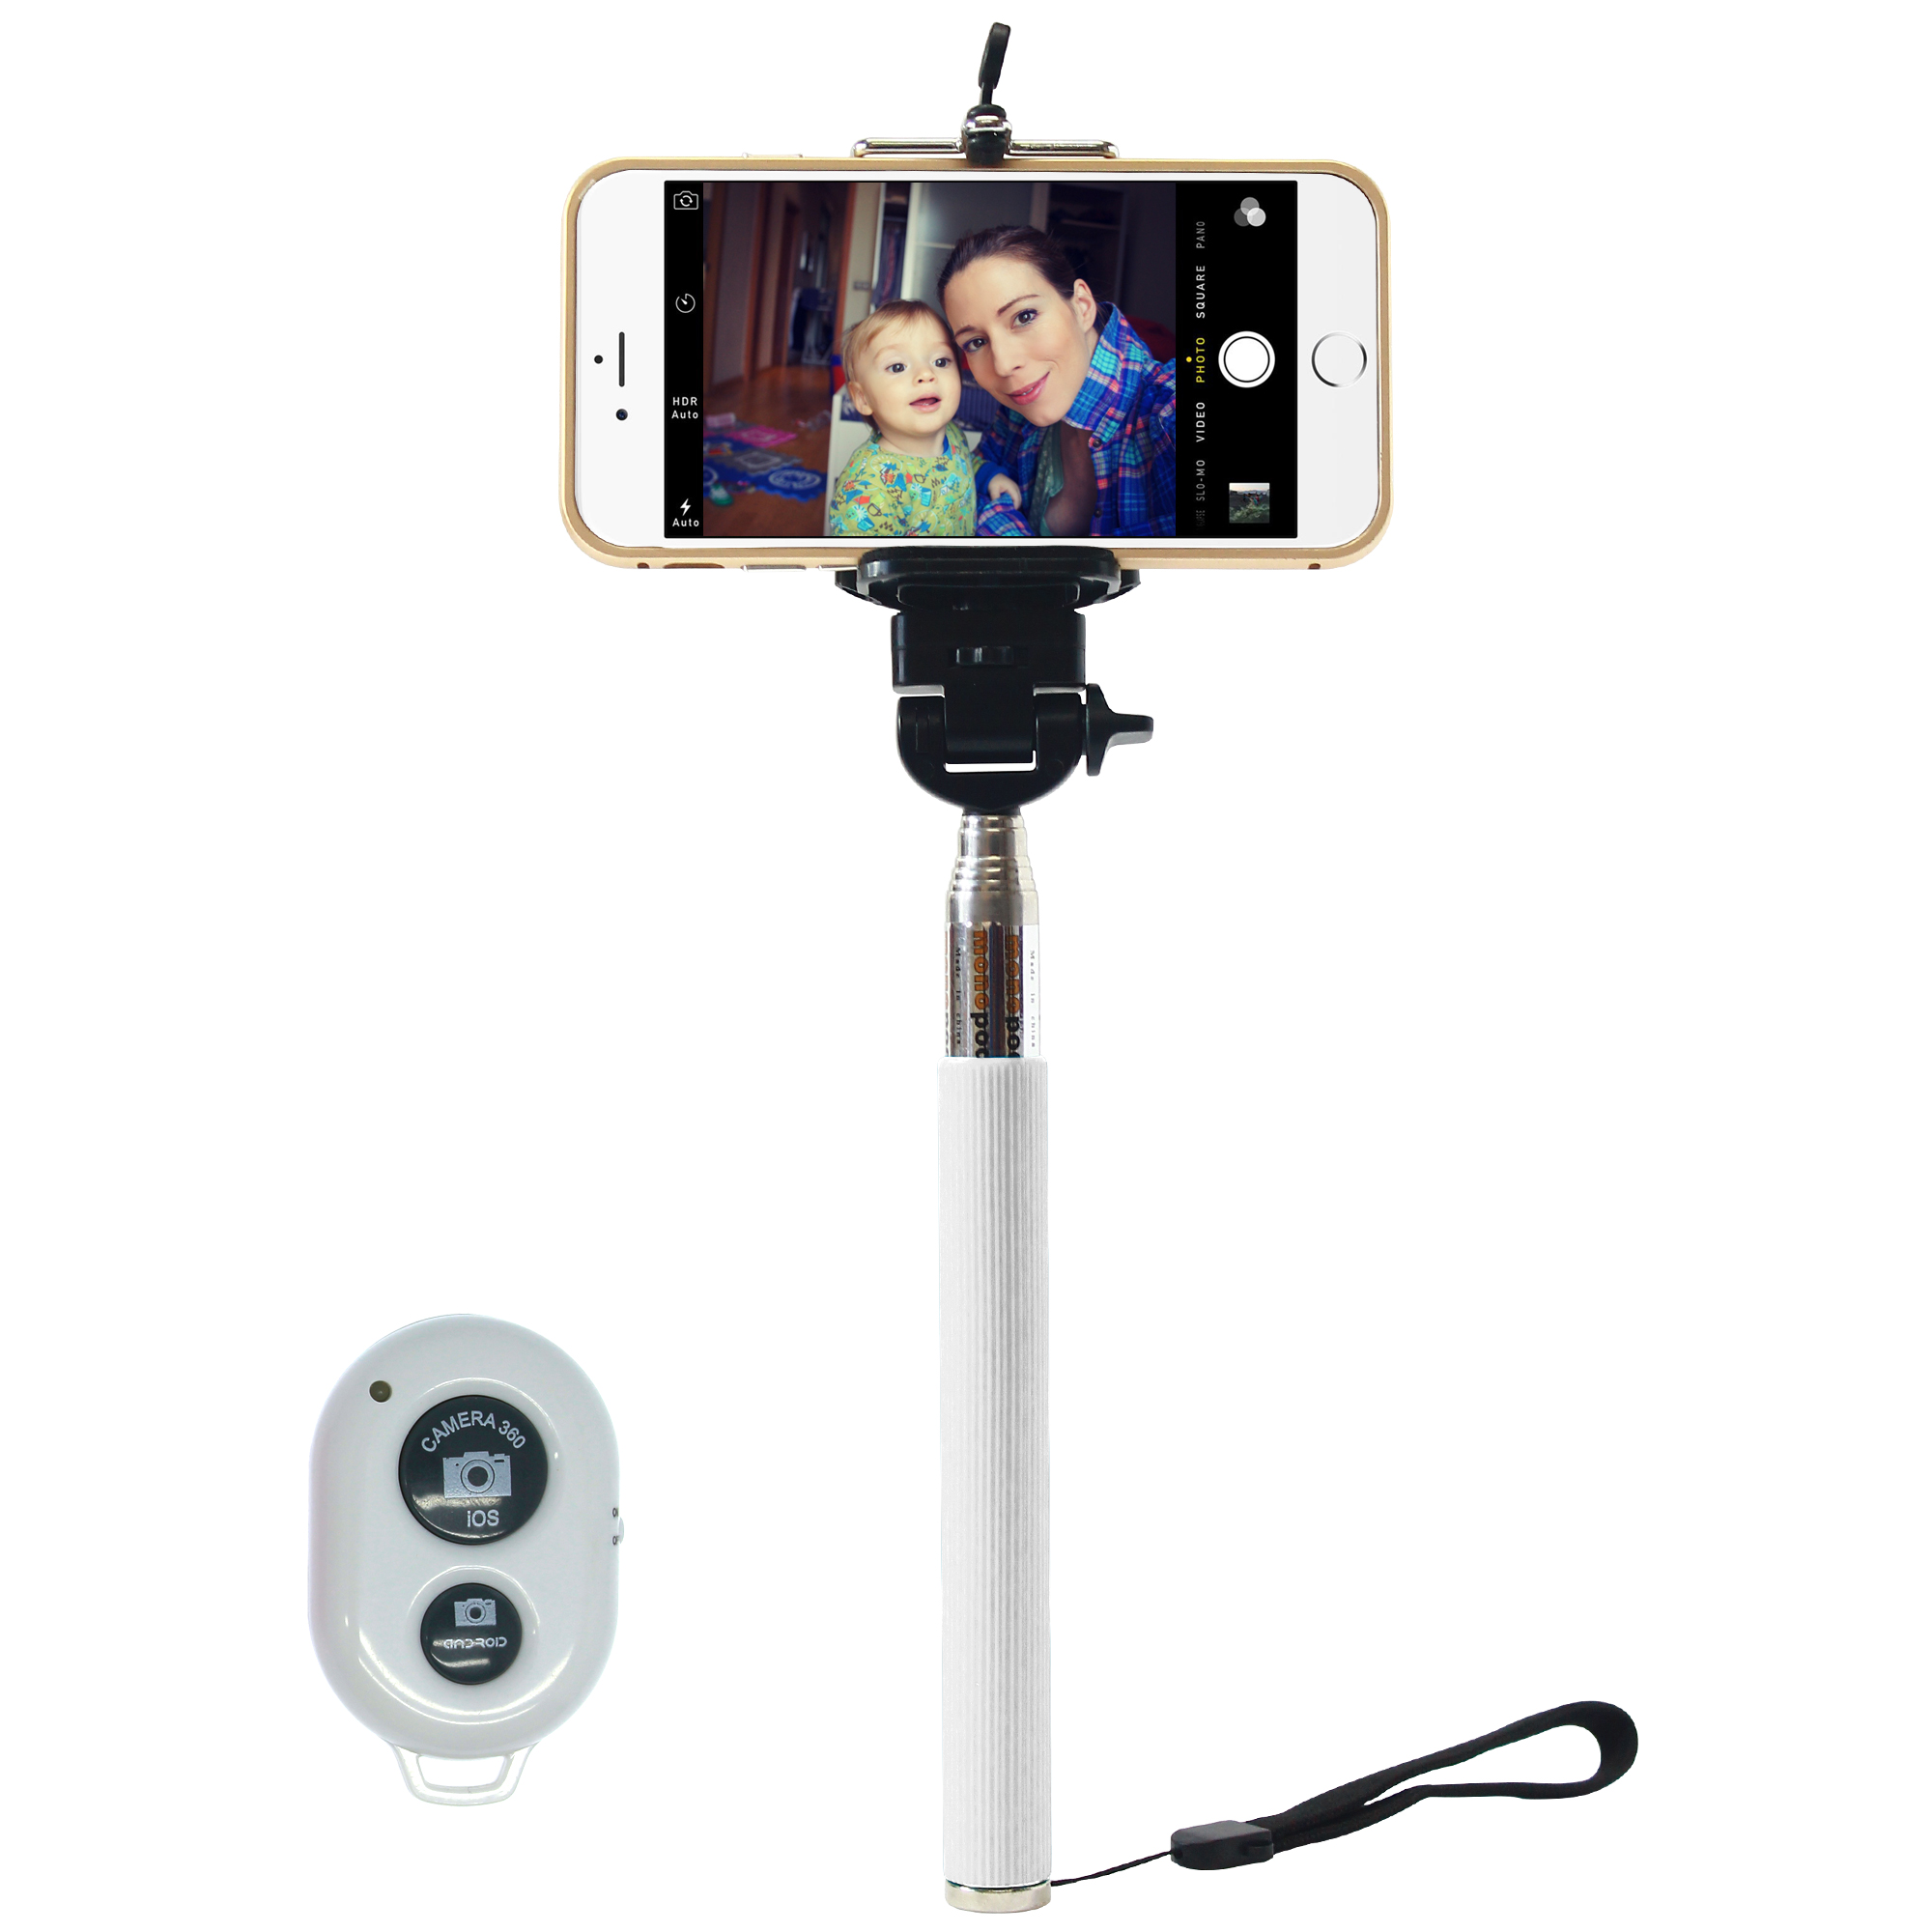 bluetooth shutter extendable handheld selfie stick monopod for iphone 5 5s 6. Black Bedroom Furniture Sets. Home Design Ideas